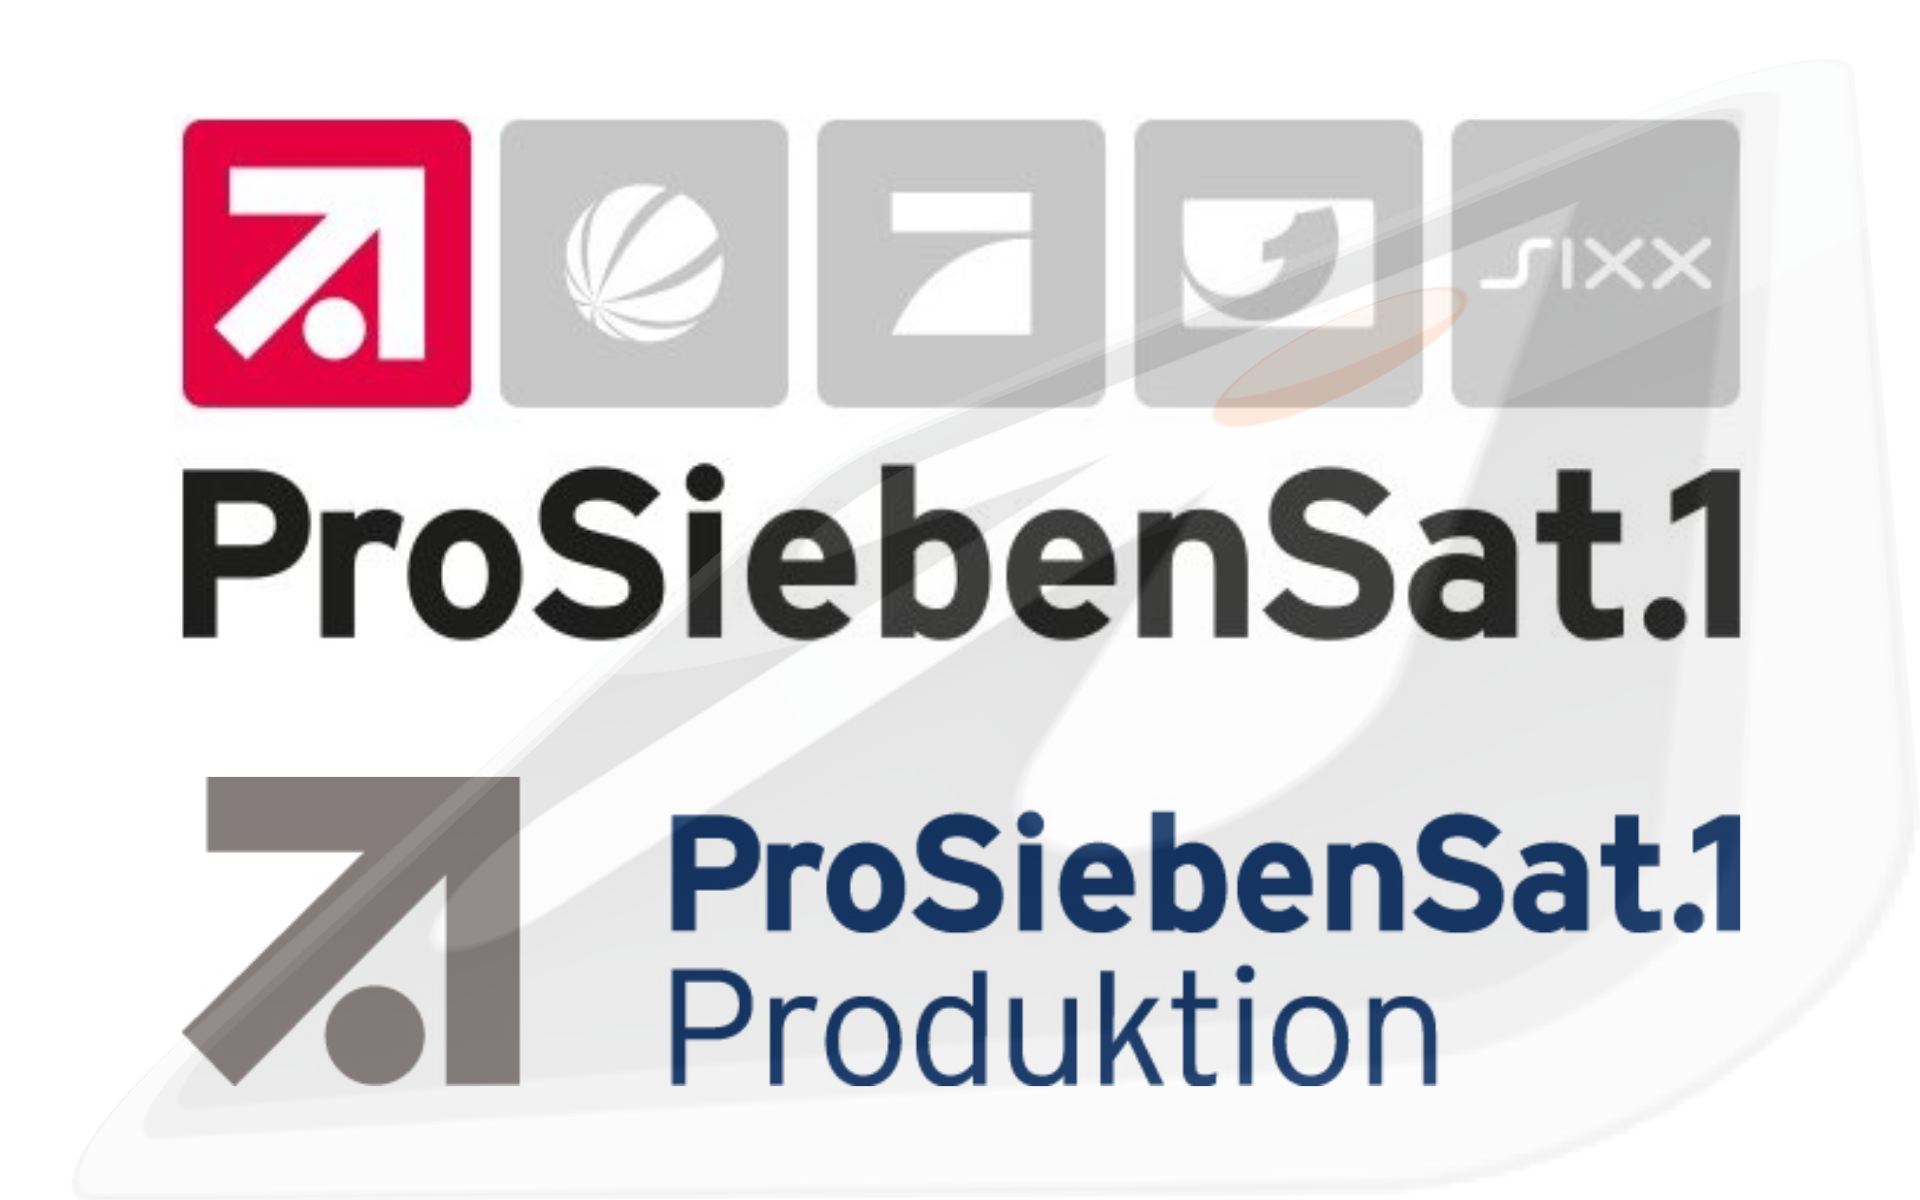 ProSiebenSat.1 - ProSiebenSat.1 Produktion - Media & IT Maue